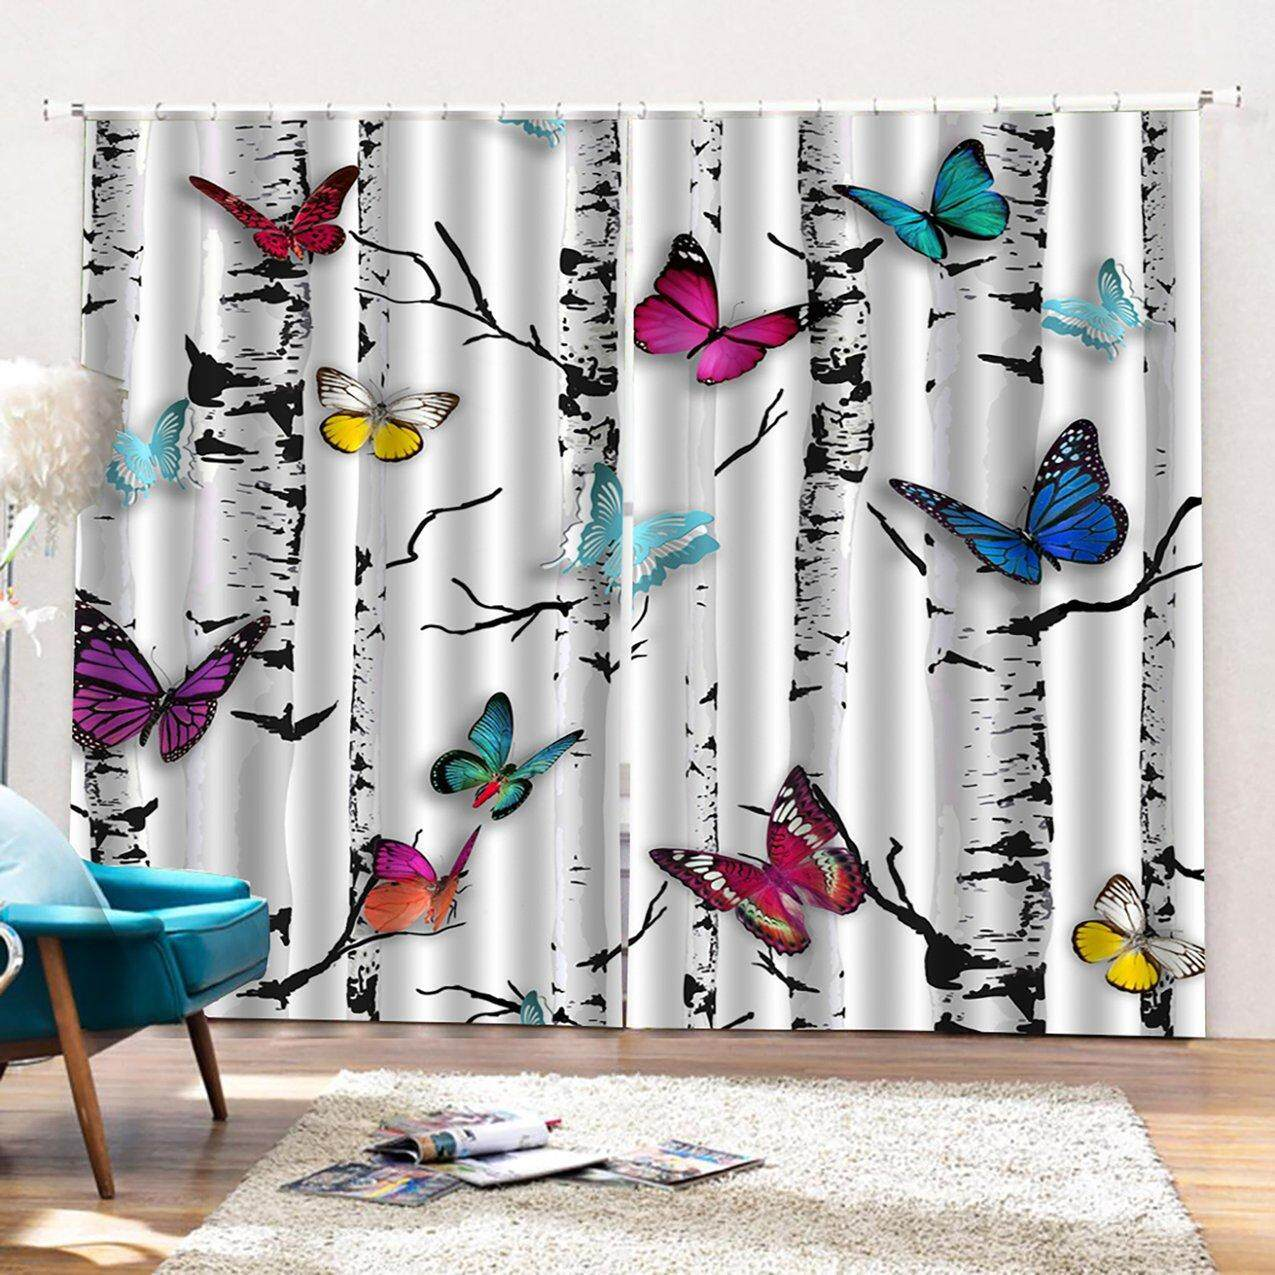 Crazy Sale Colorful Tree Butterfly Curtain Cute Living Bedroom 3d Wolf Curtain 140*100cm Trendy Living Room Bedroom Blackout